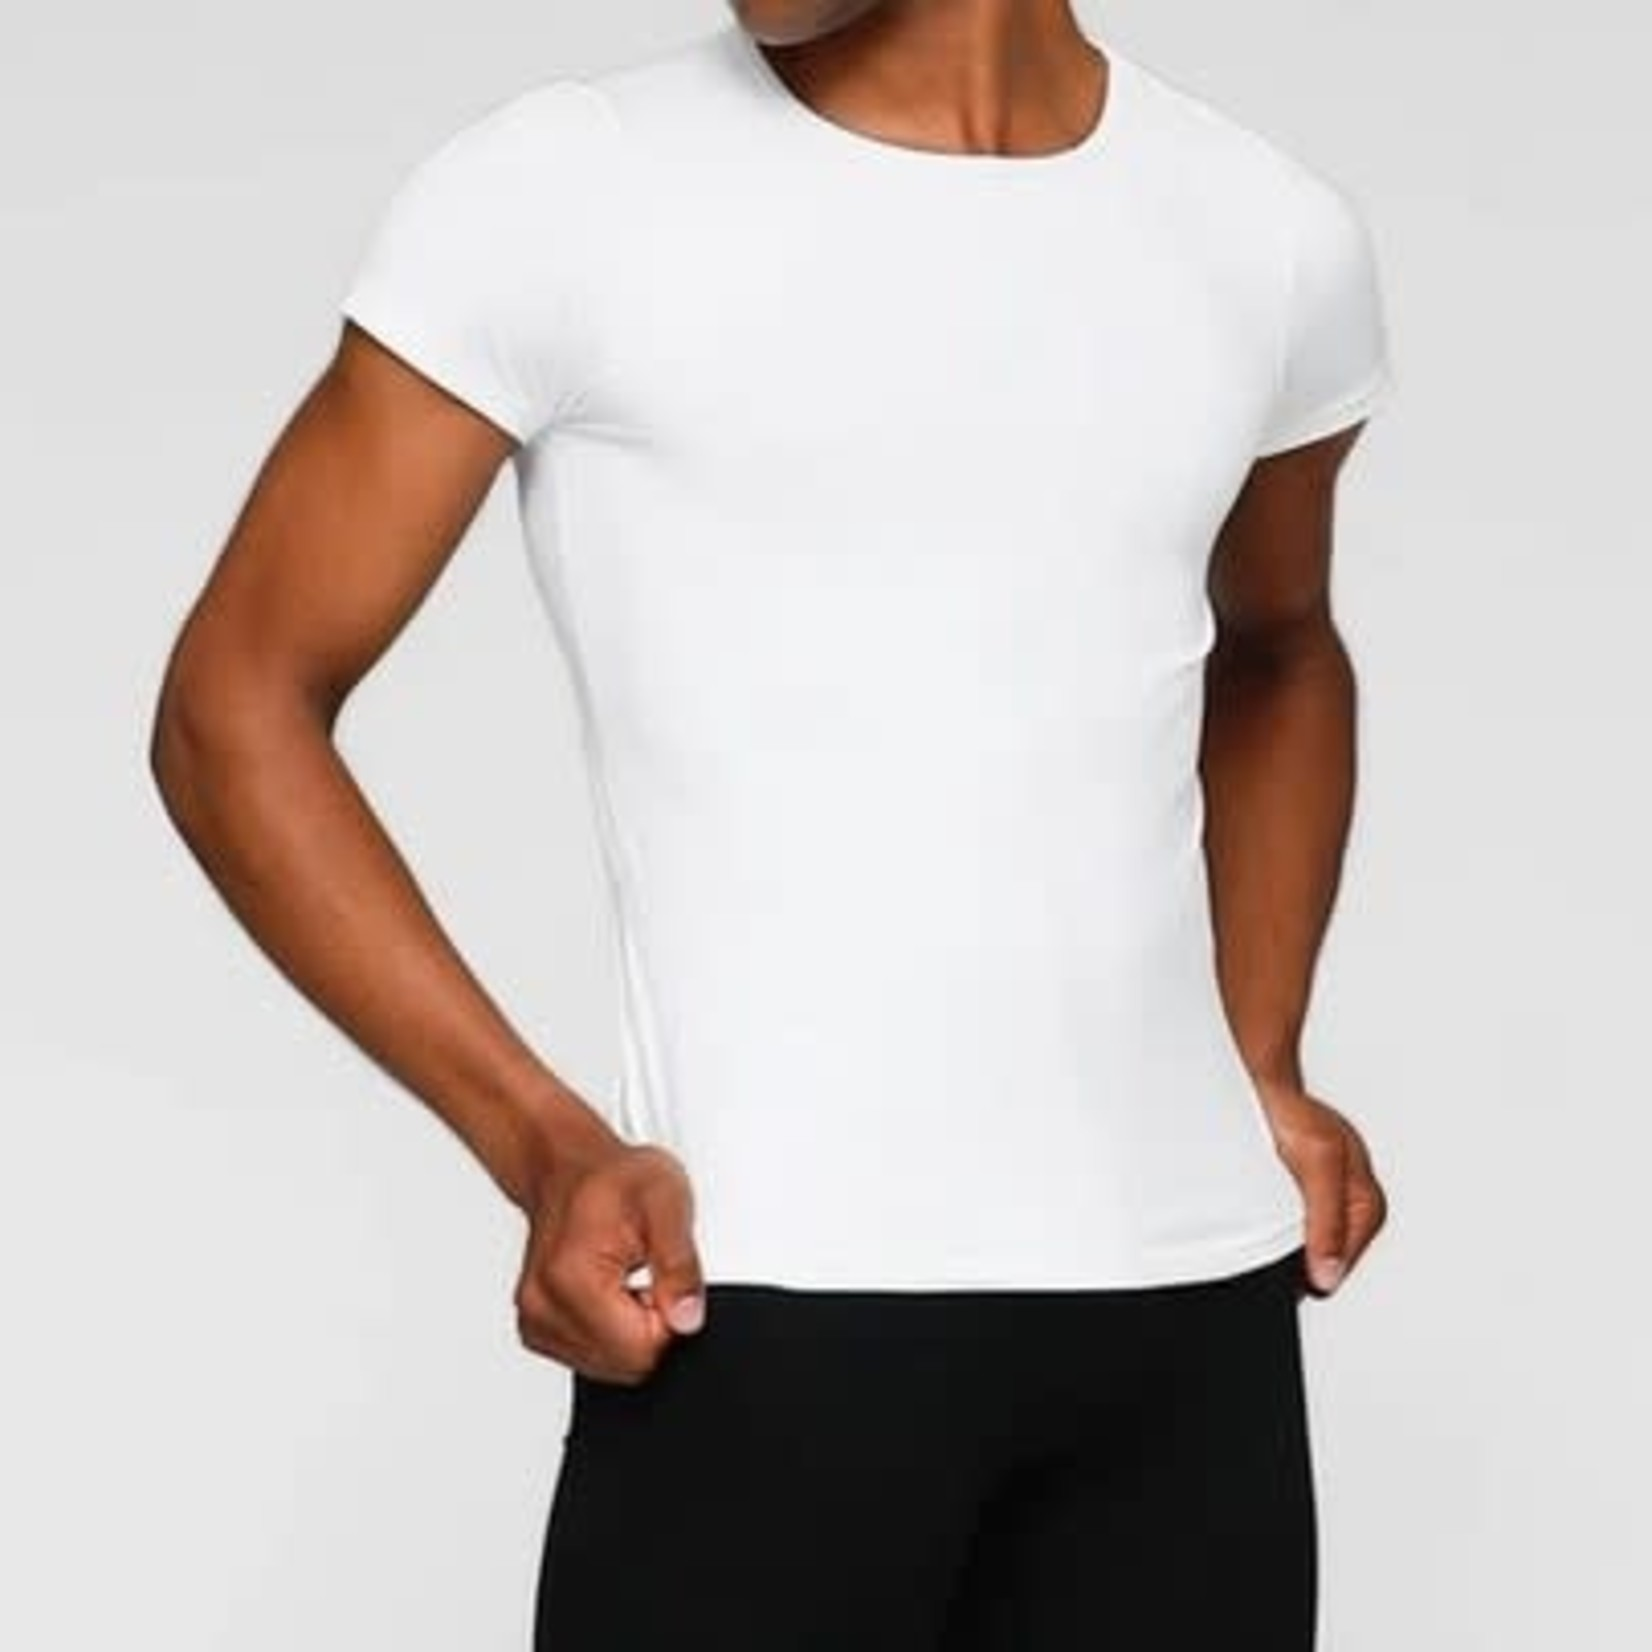 Body Wrappers Body Wrappers M400 Men's Short Sleeve Shirt